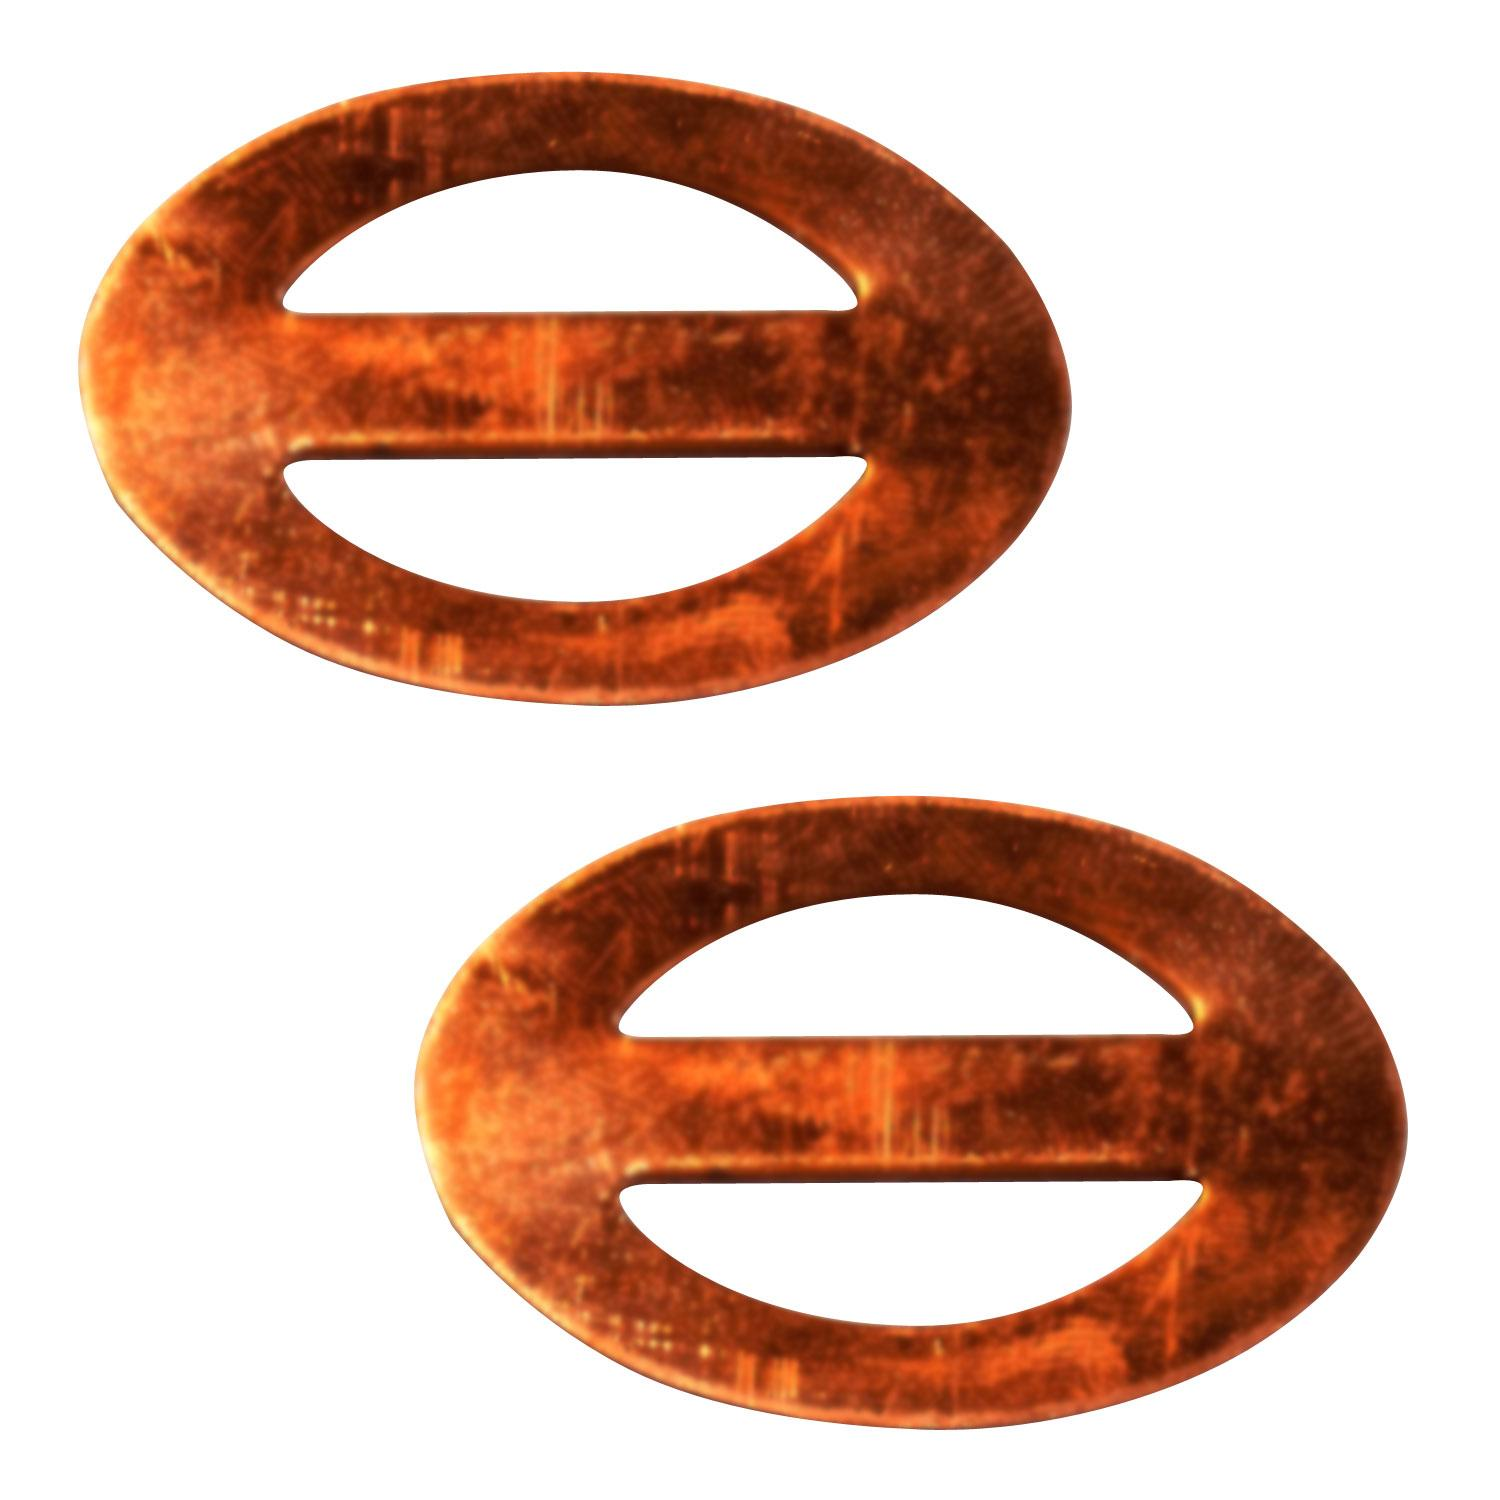 Oval Scarf Buckle Copper Shape - 2 Pack